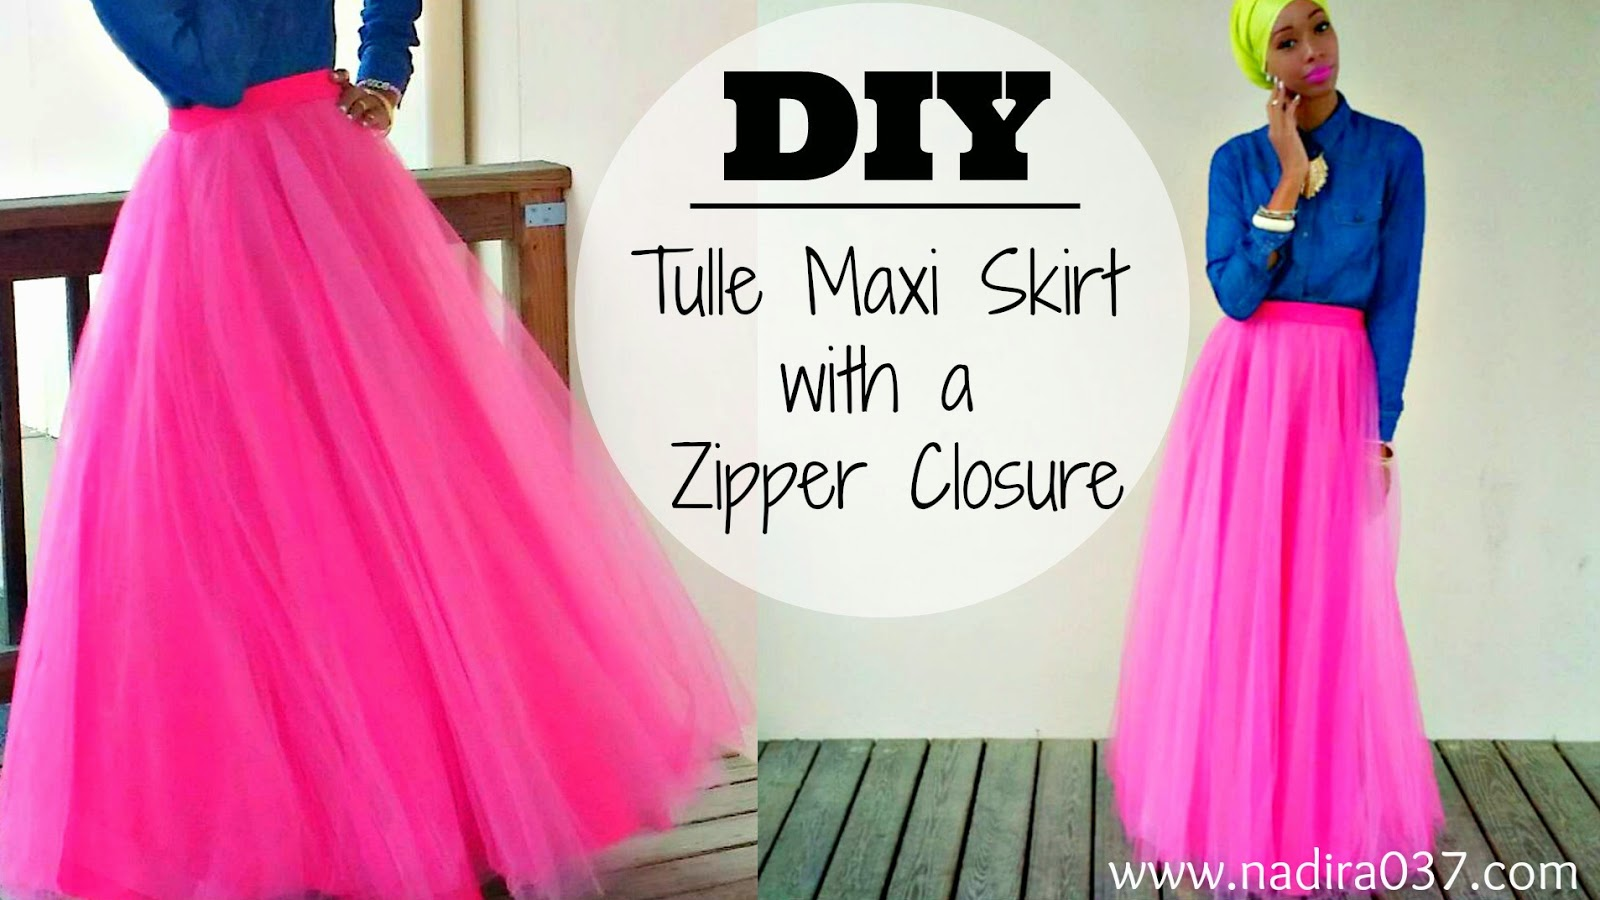 Diy Tulle Maxi Skirt Zipper Closure Tutorial Nadira037